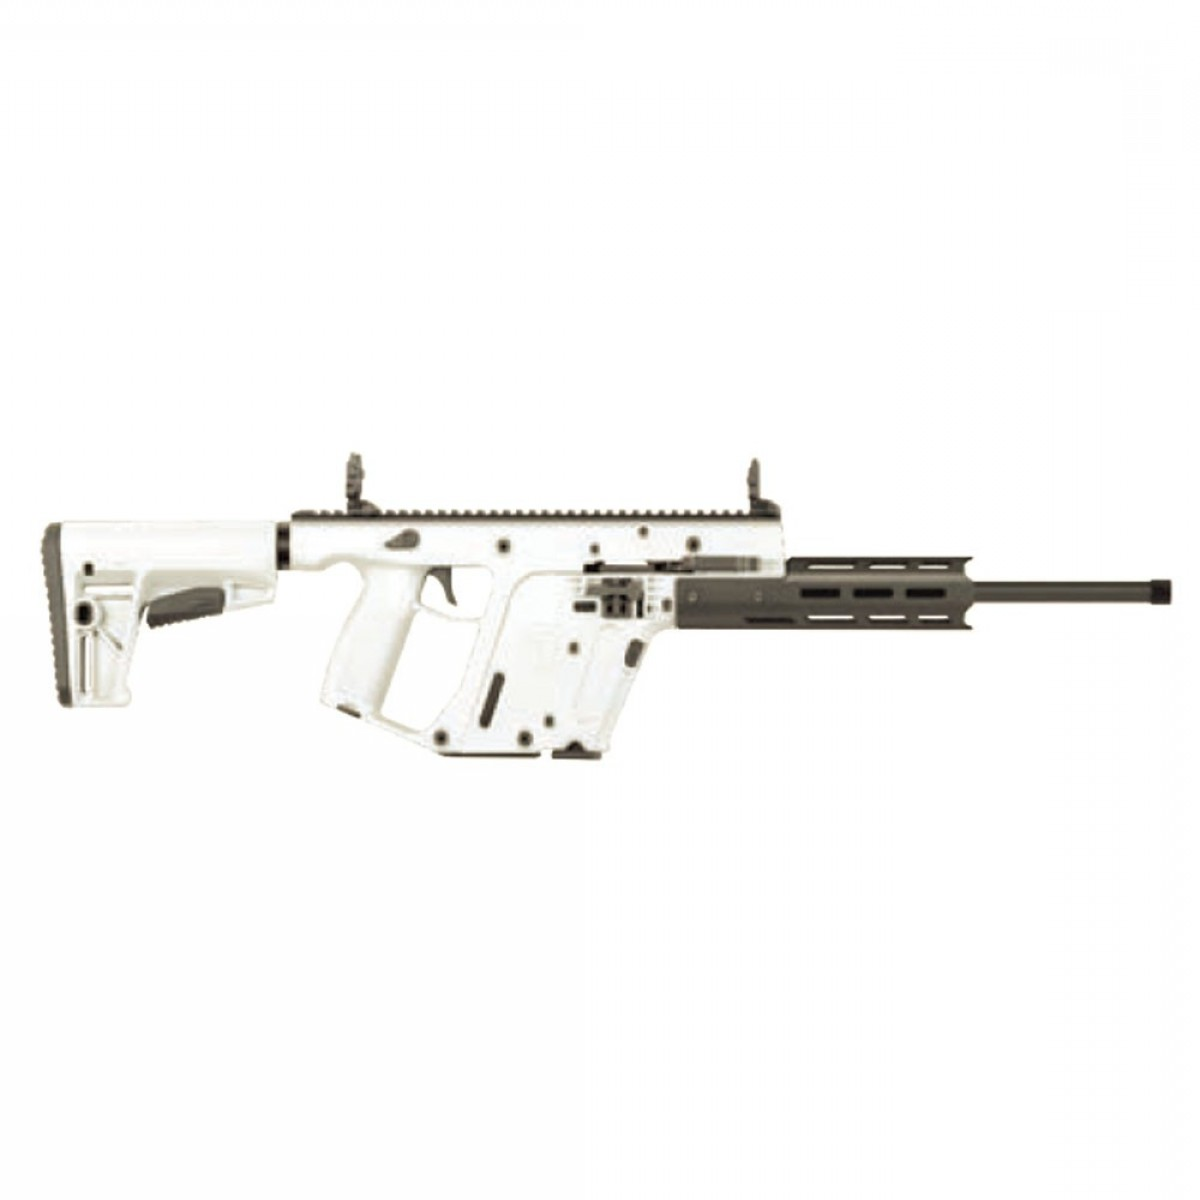 Custom Kriss Vector Airsoft Firing: Kriss Vector Crb Gen Ii Semi Auto Rifle Lr Barrel Alpine White Kv Sap